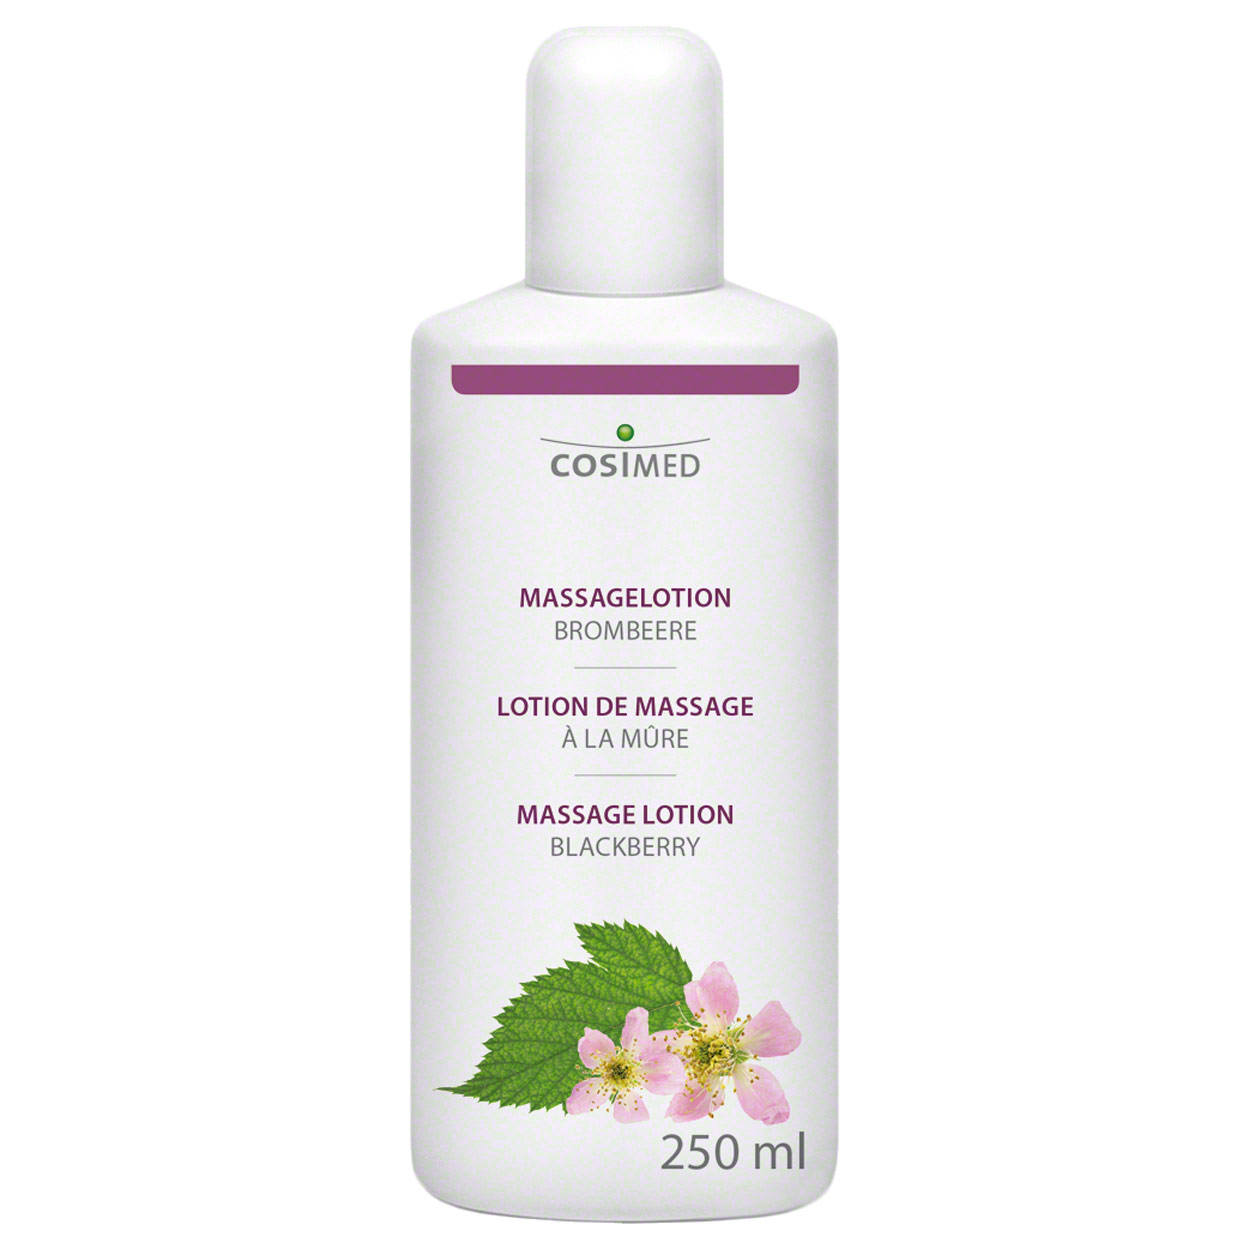 Therapiebedarf: cosiMed Massagelotion Brombeere, 250 ml